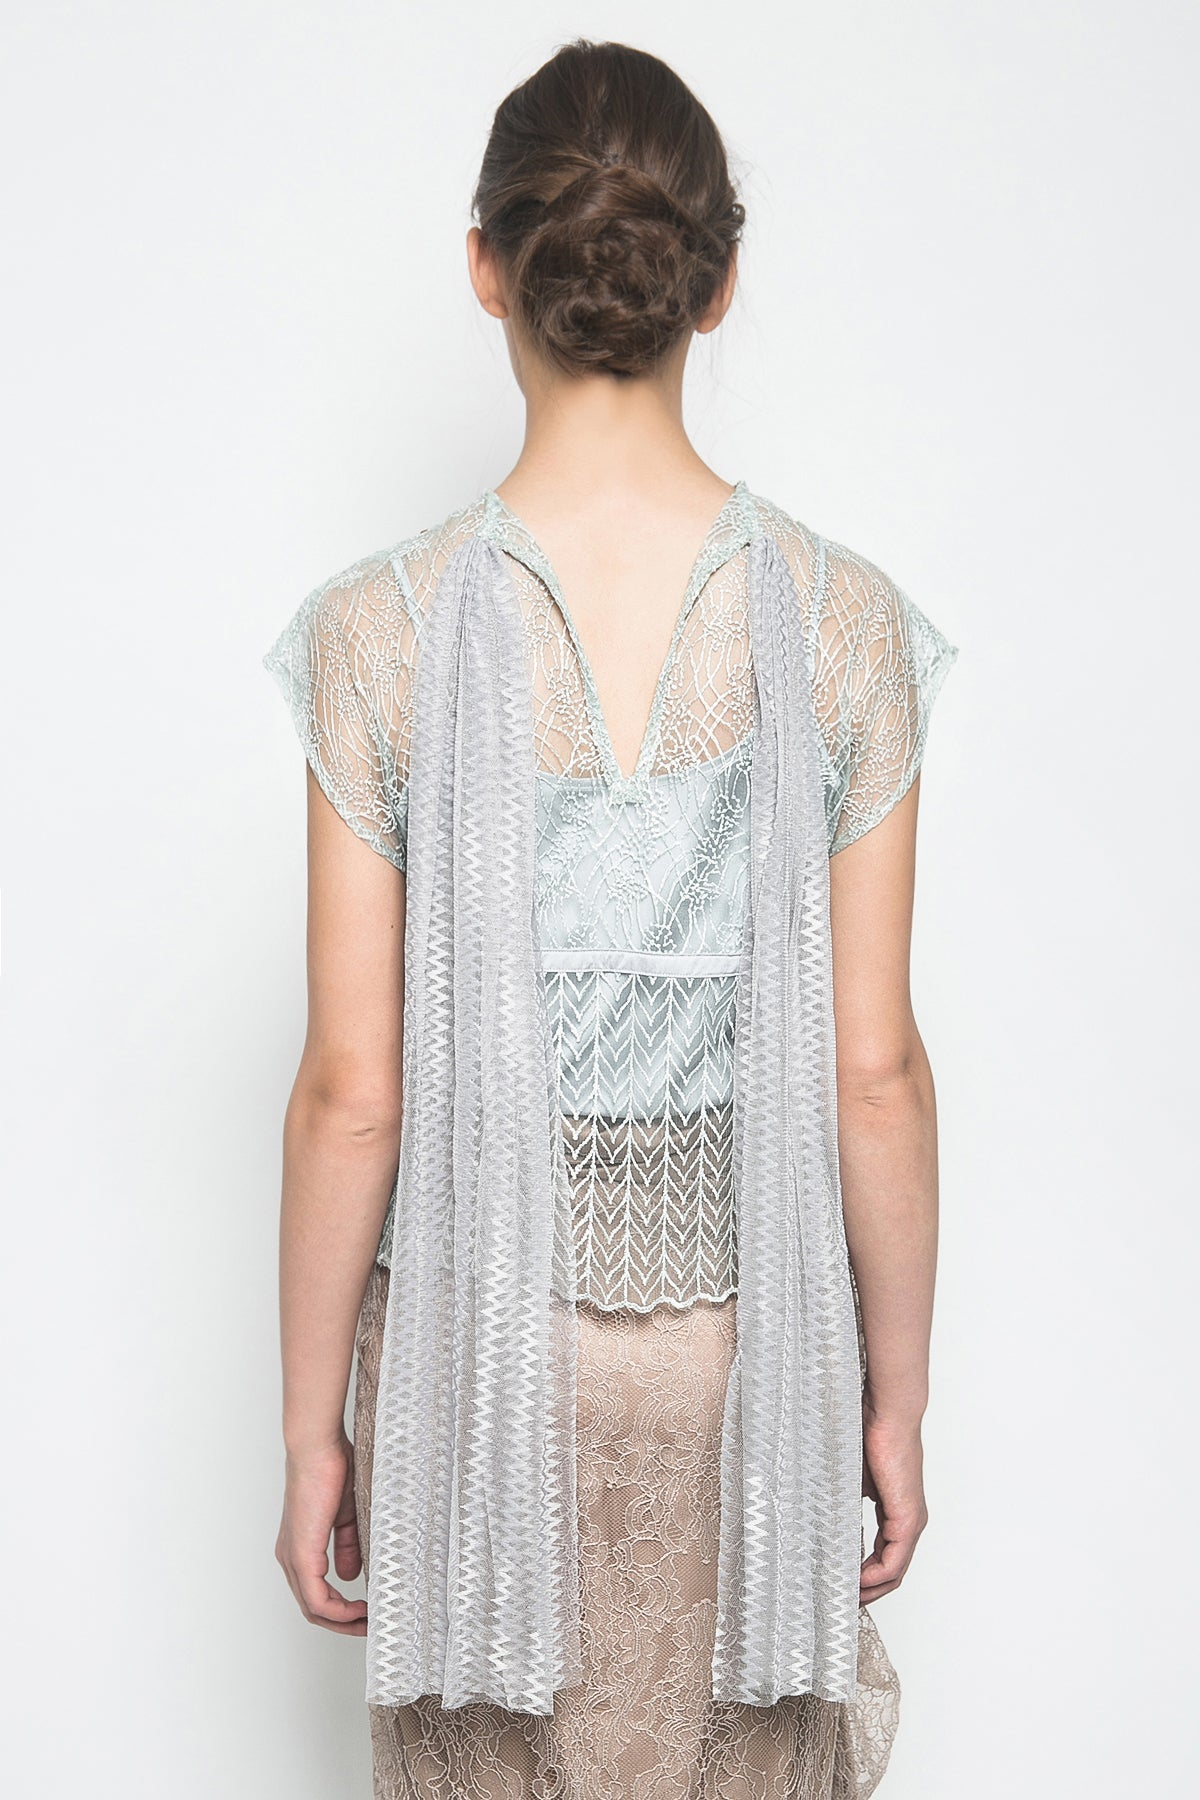 MYVB Atelier Frances Beads Top In Mint